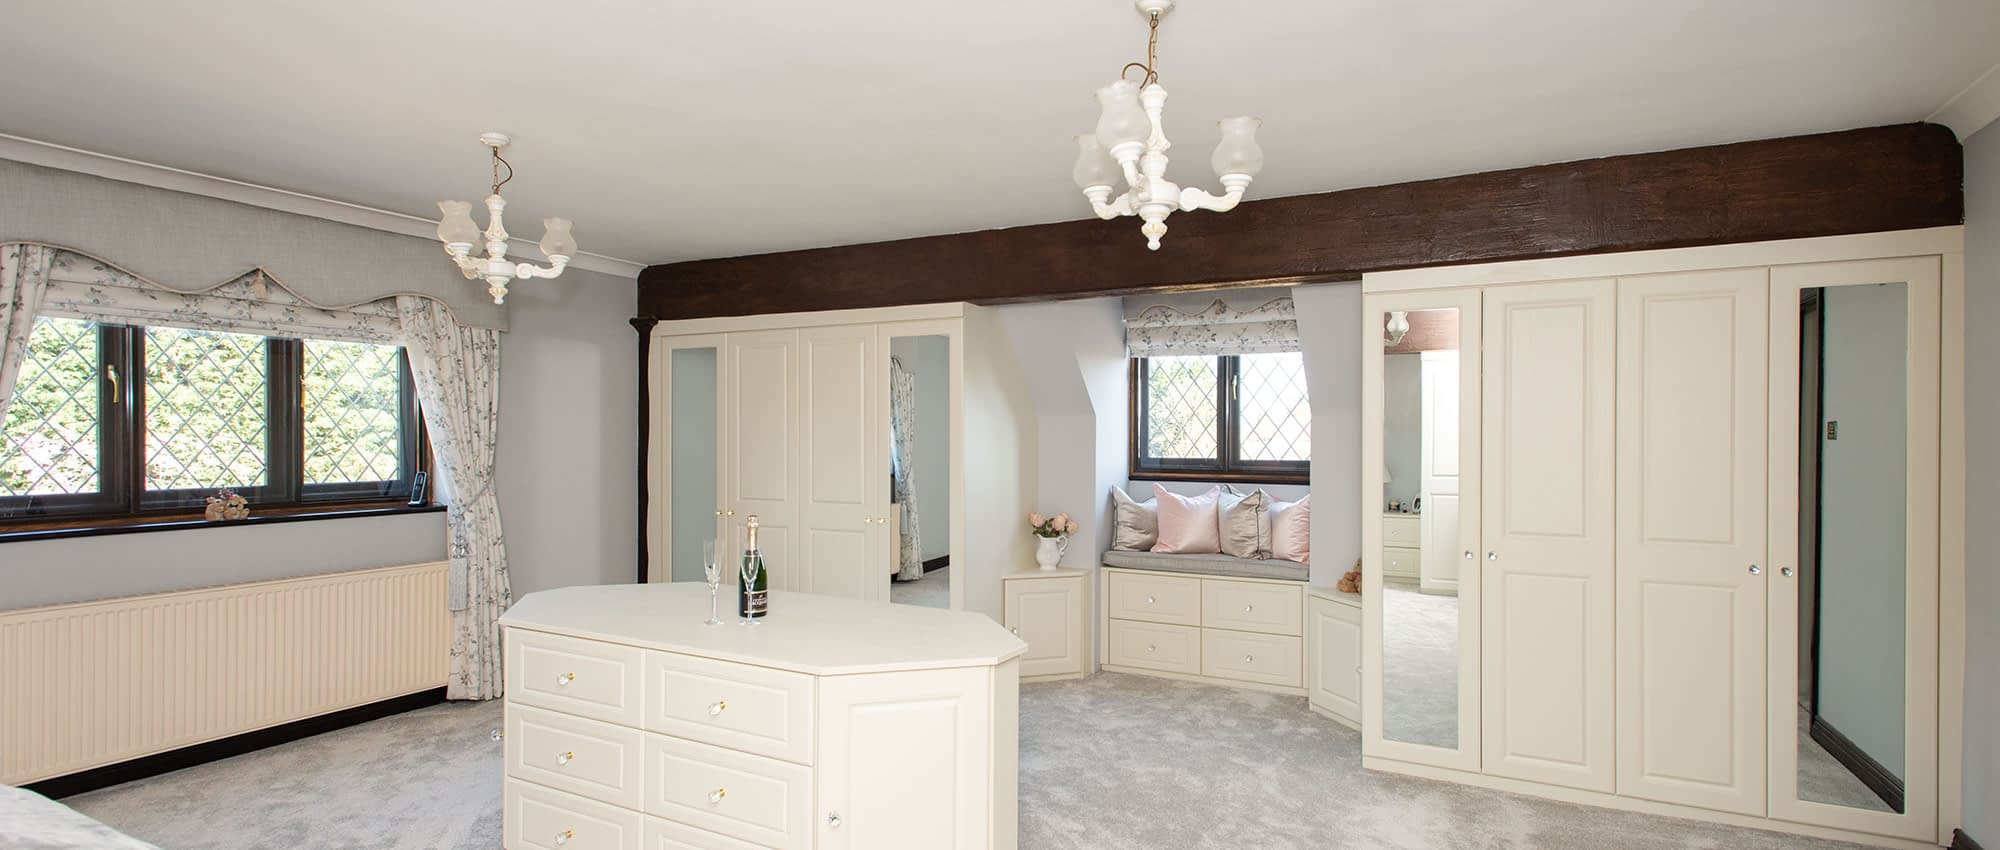 custom bedroom with central island